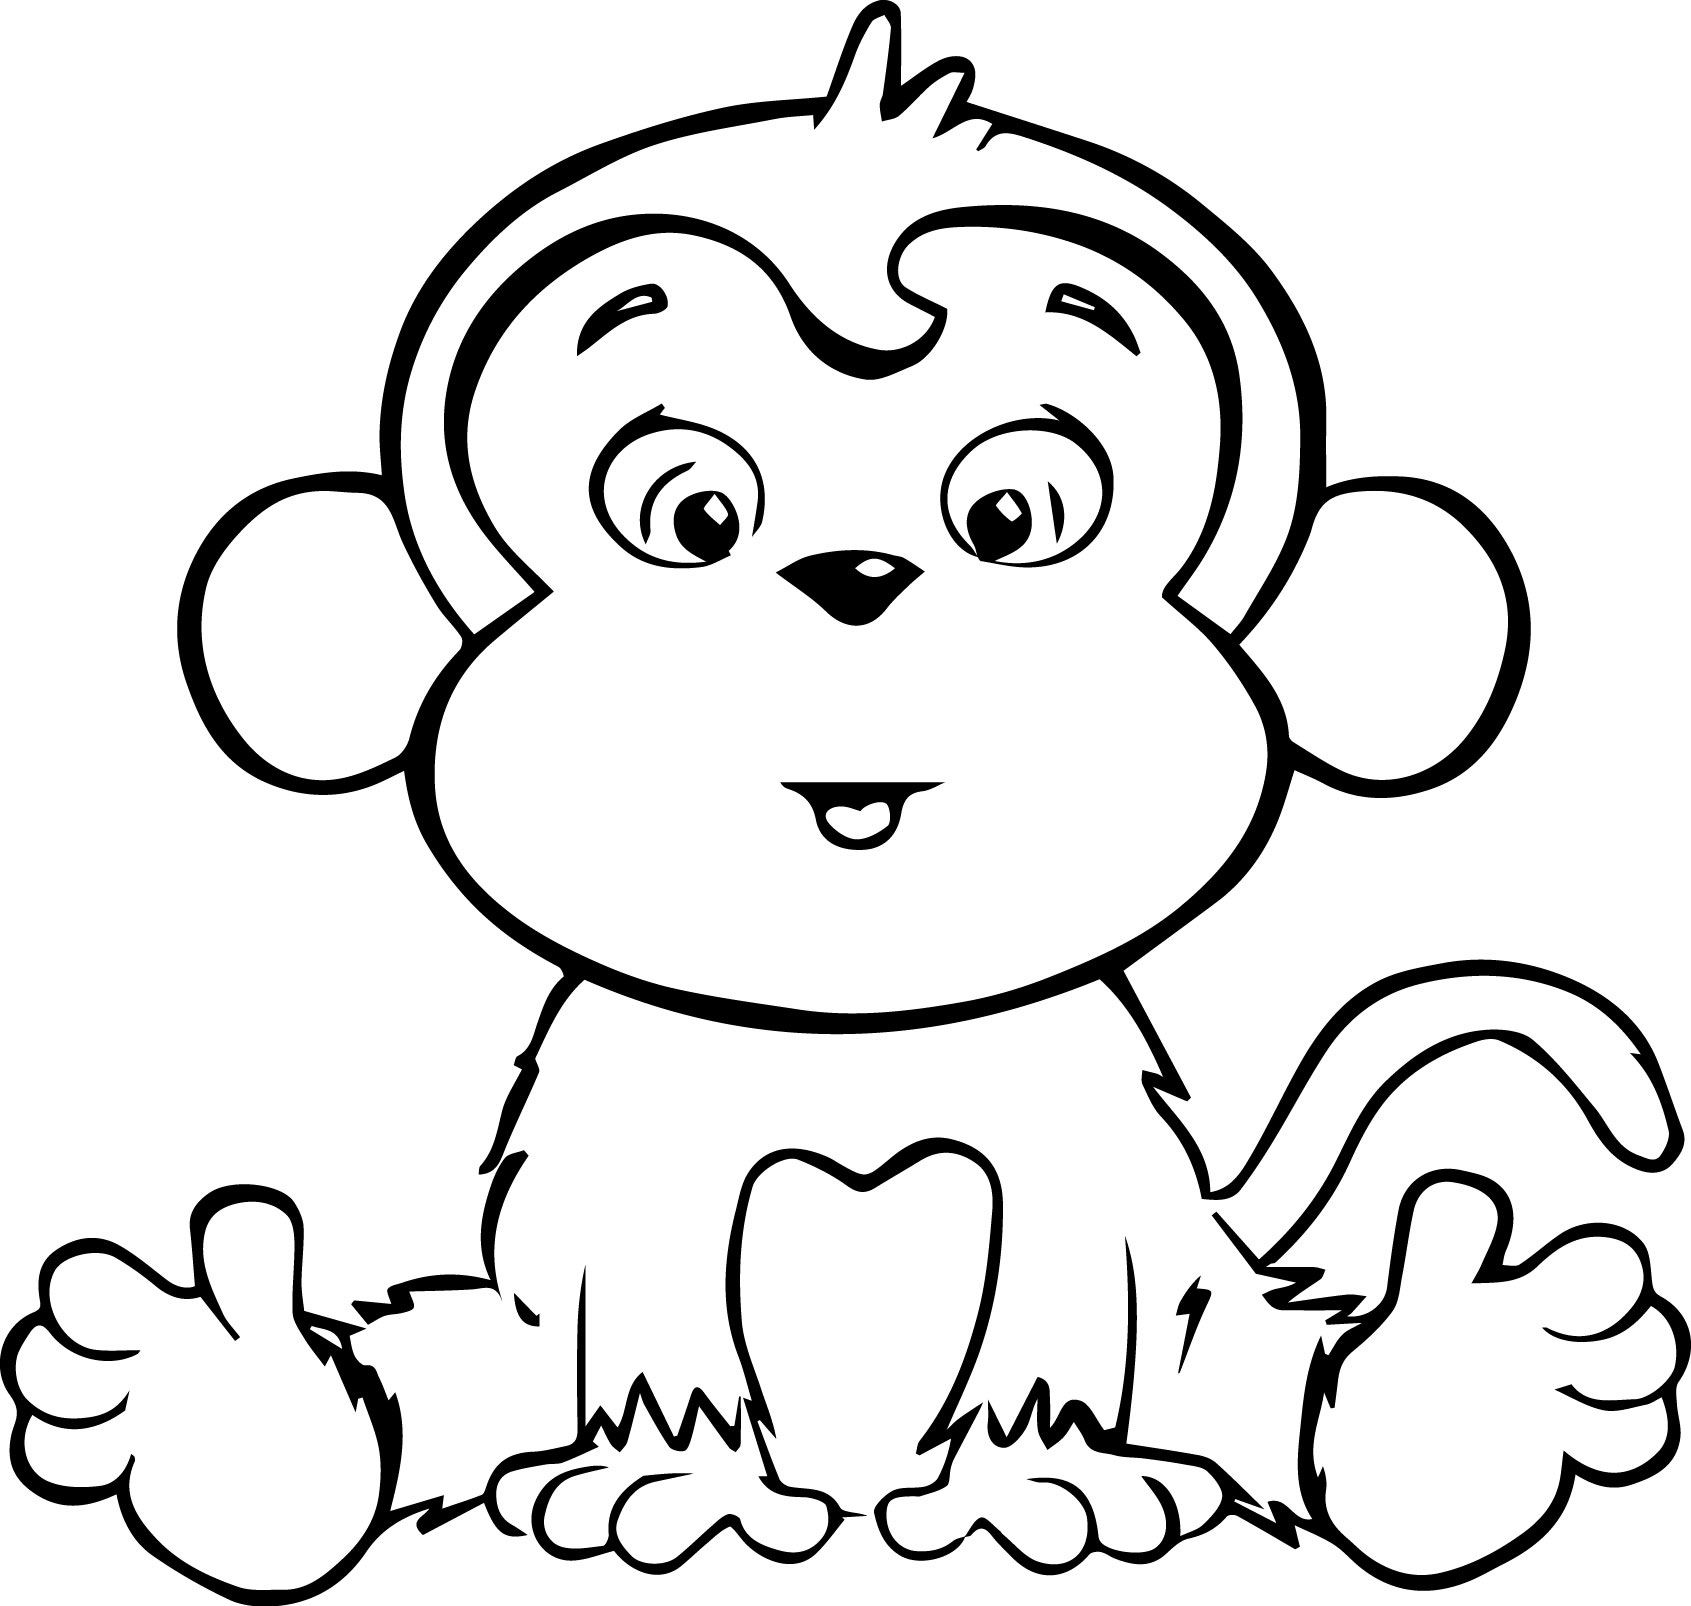 Monkey Coloring Pages | Free download best Monkey Coloring ...